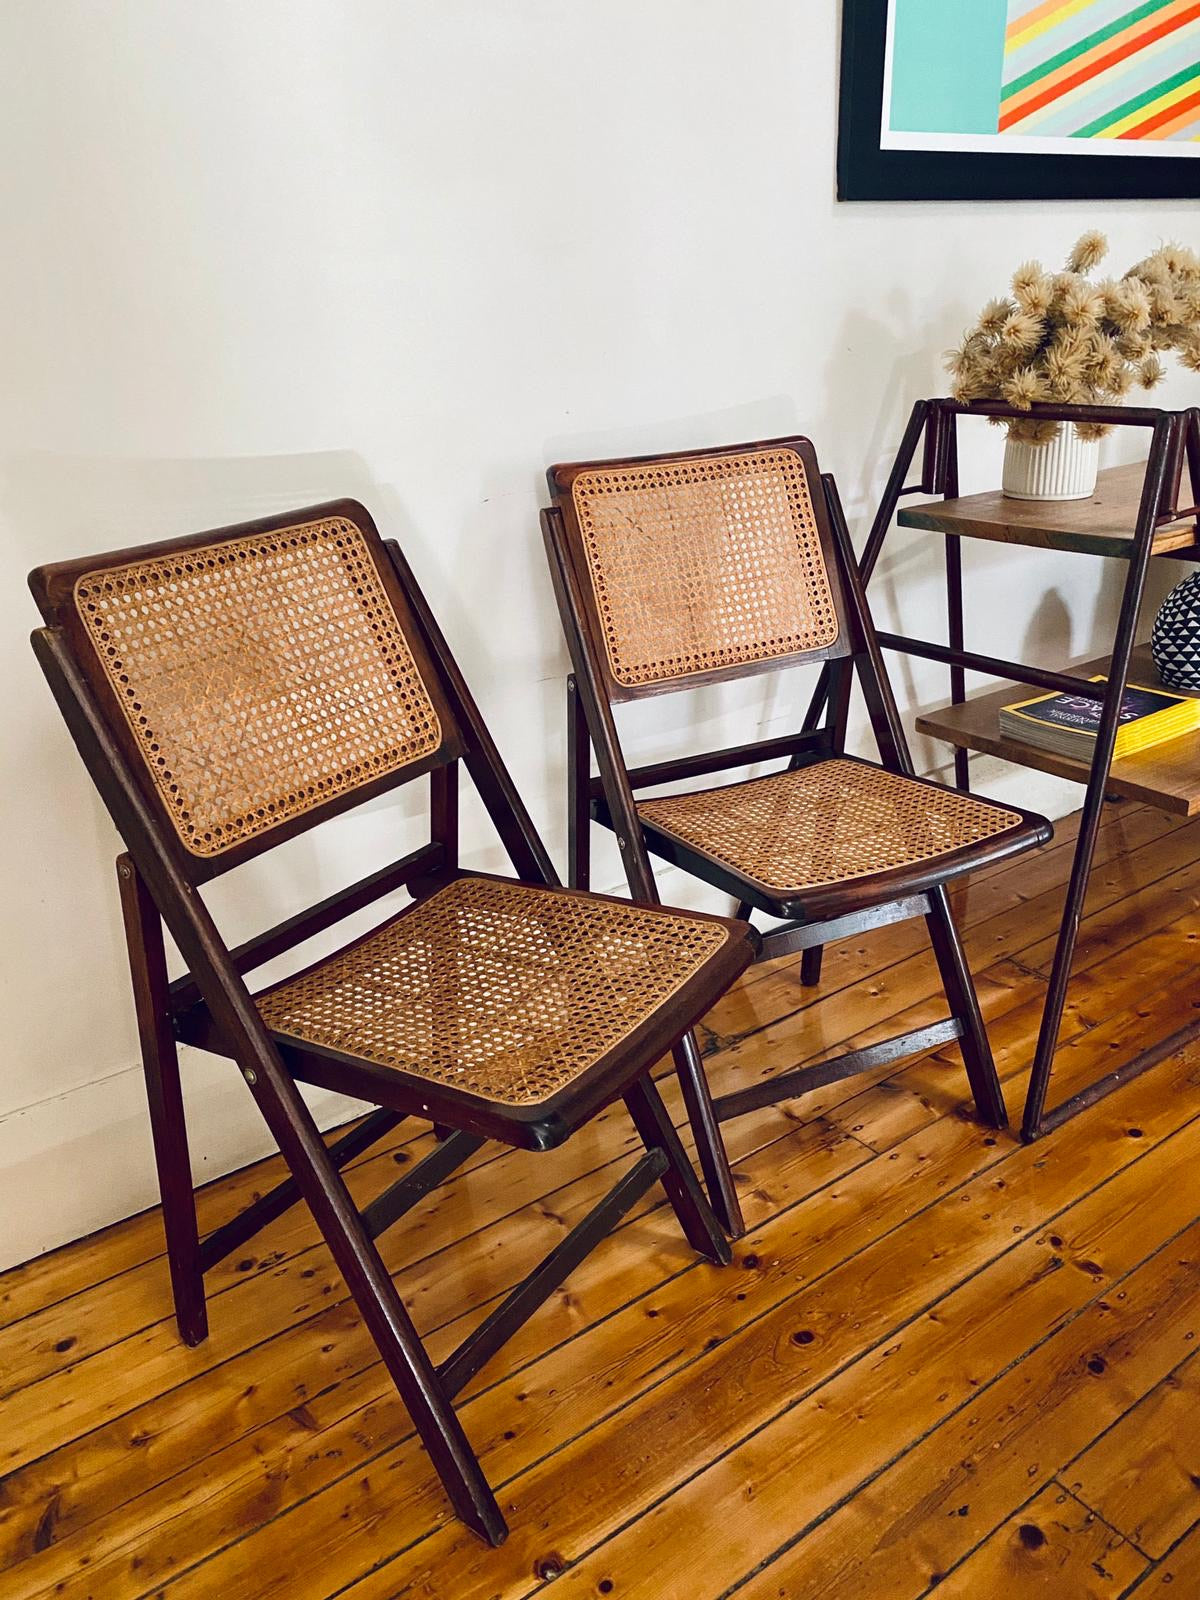 Vintage Cherry Wood Rattan Chairs